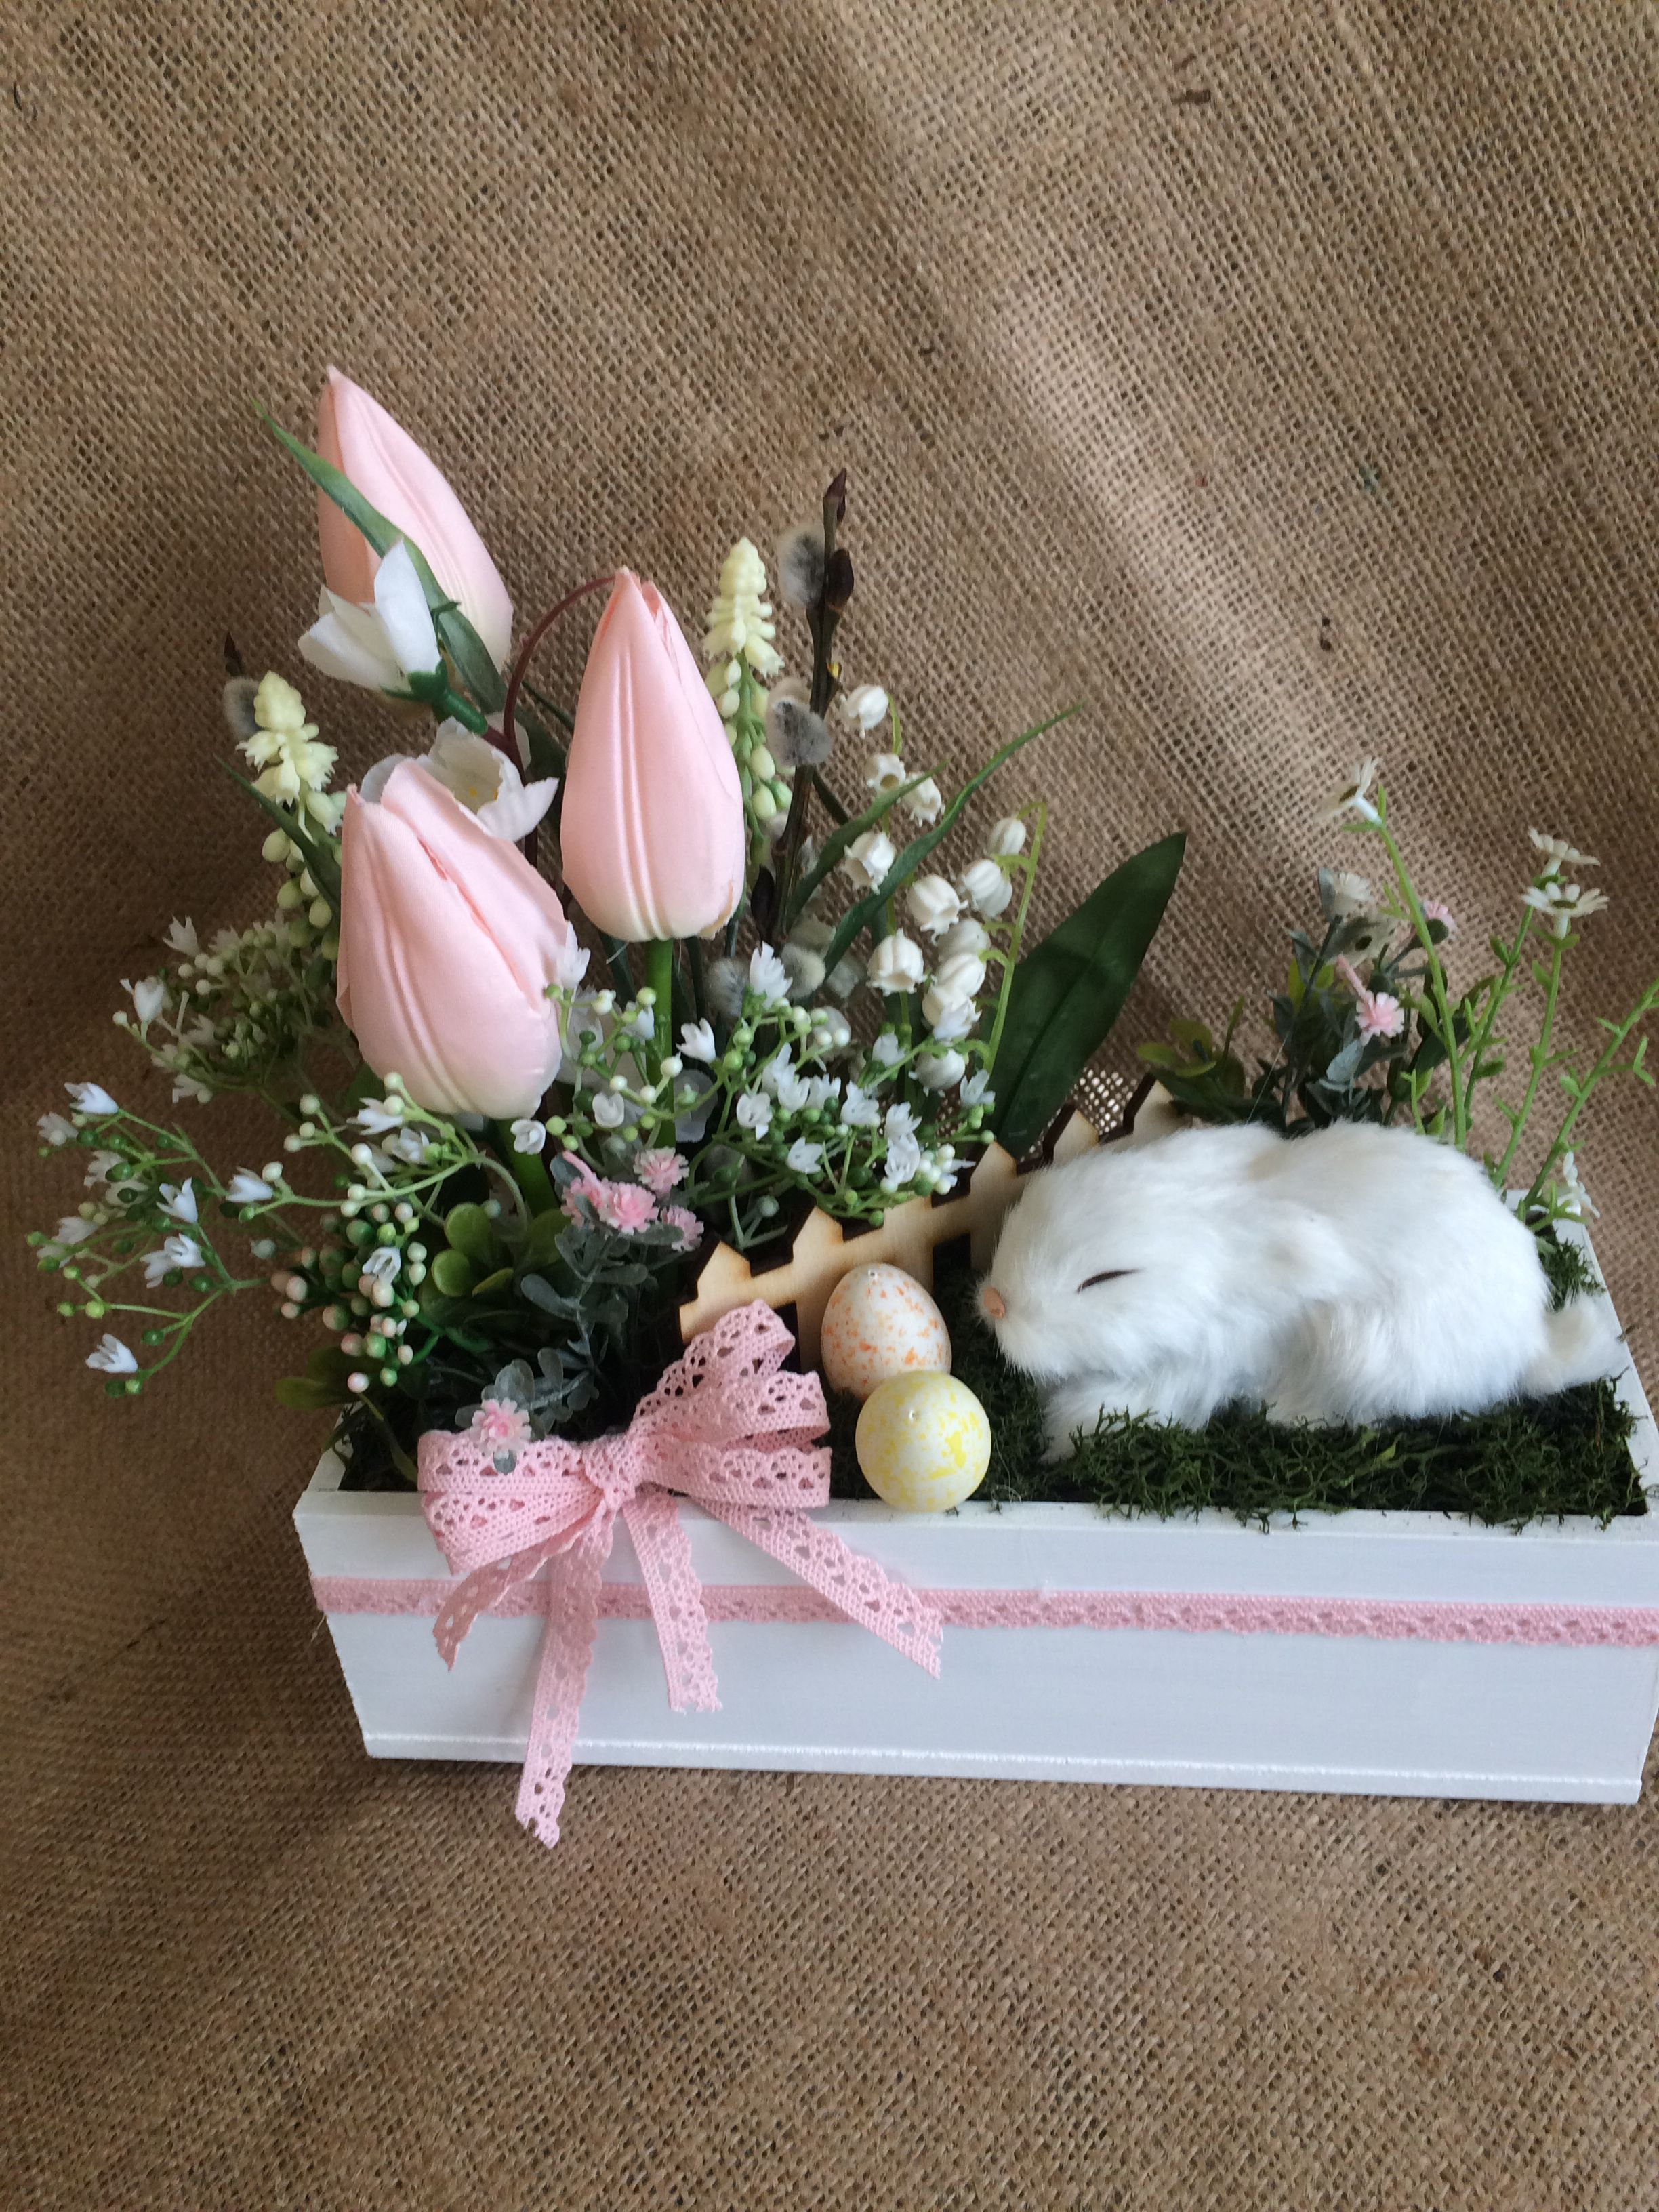 Pin By Anapro On Easter Easter Flowers Easter Floral Spring Easter Decor